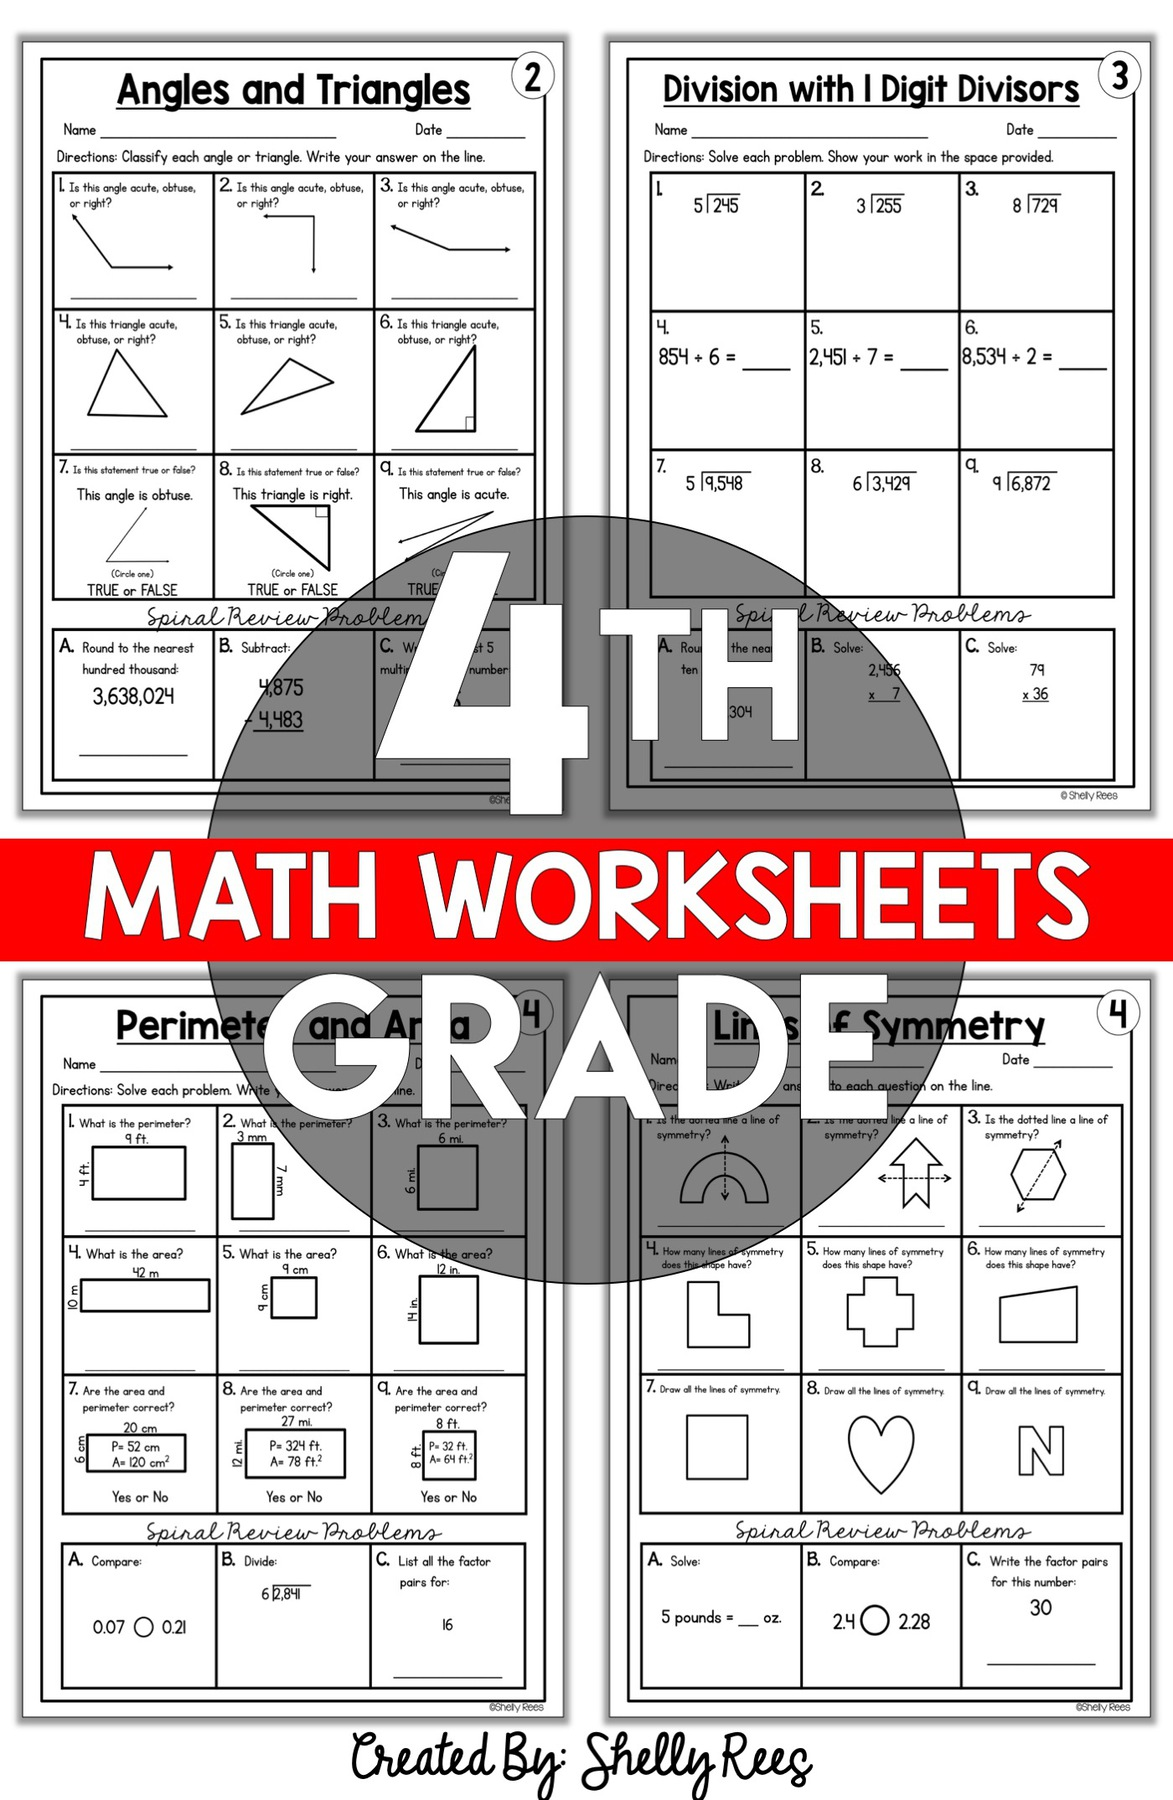 4th Grade Math Worksheets Free And Printable